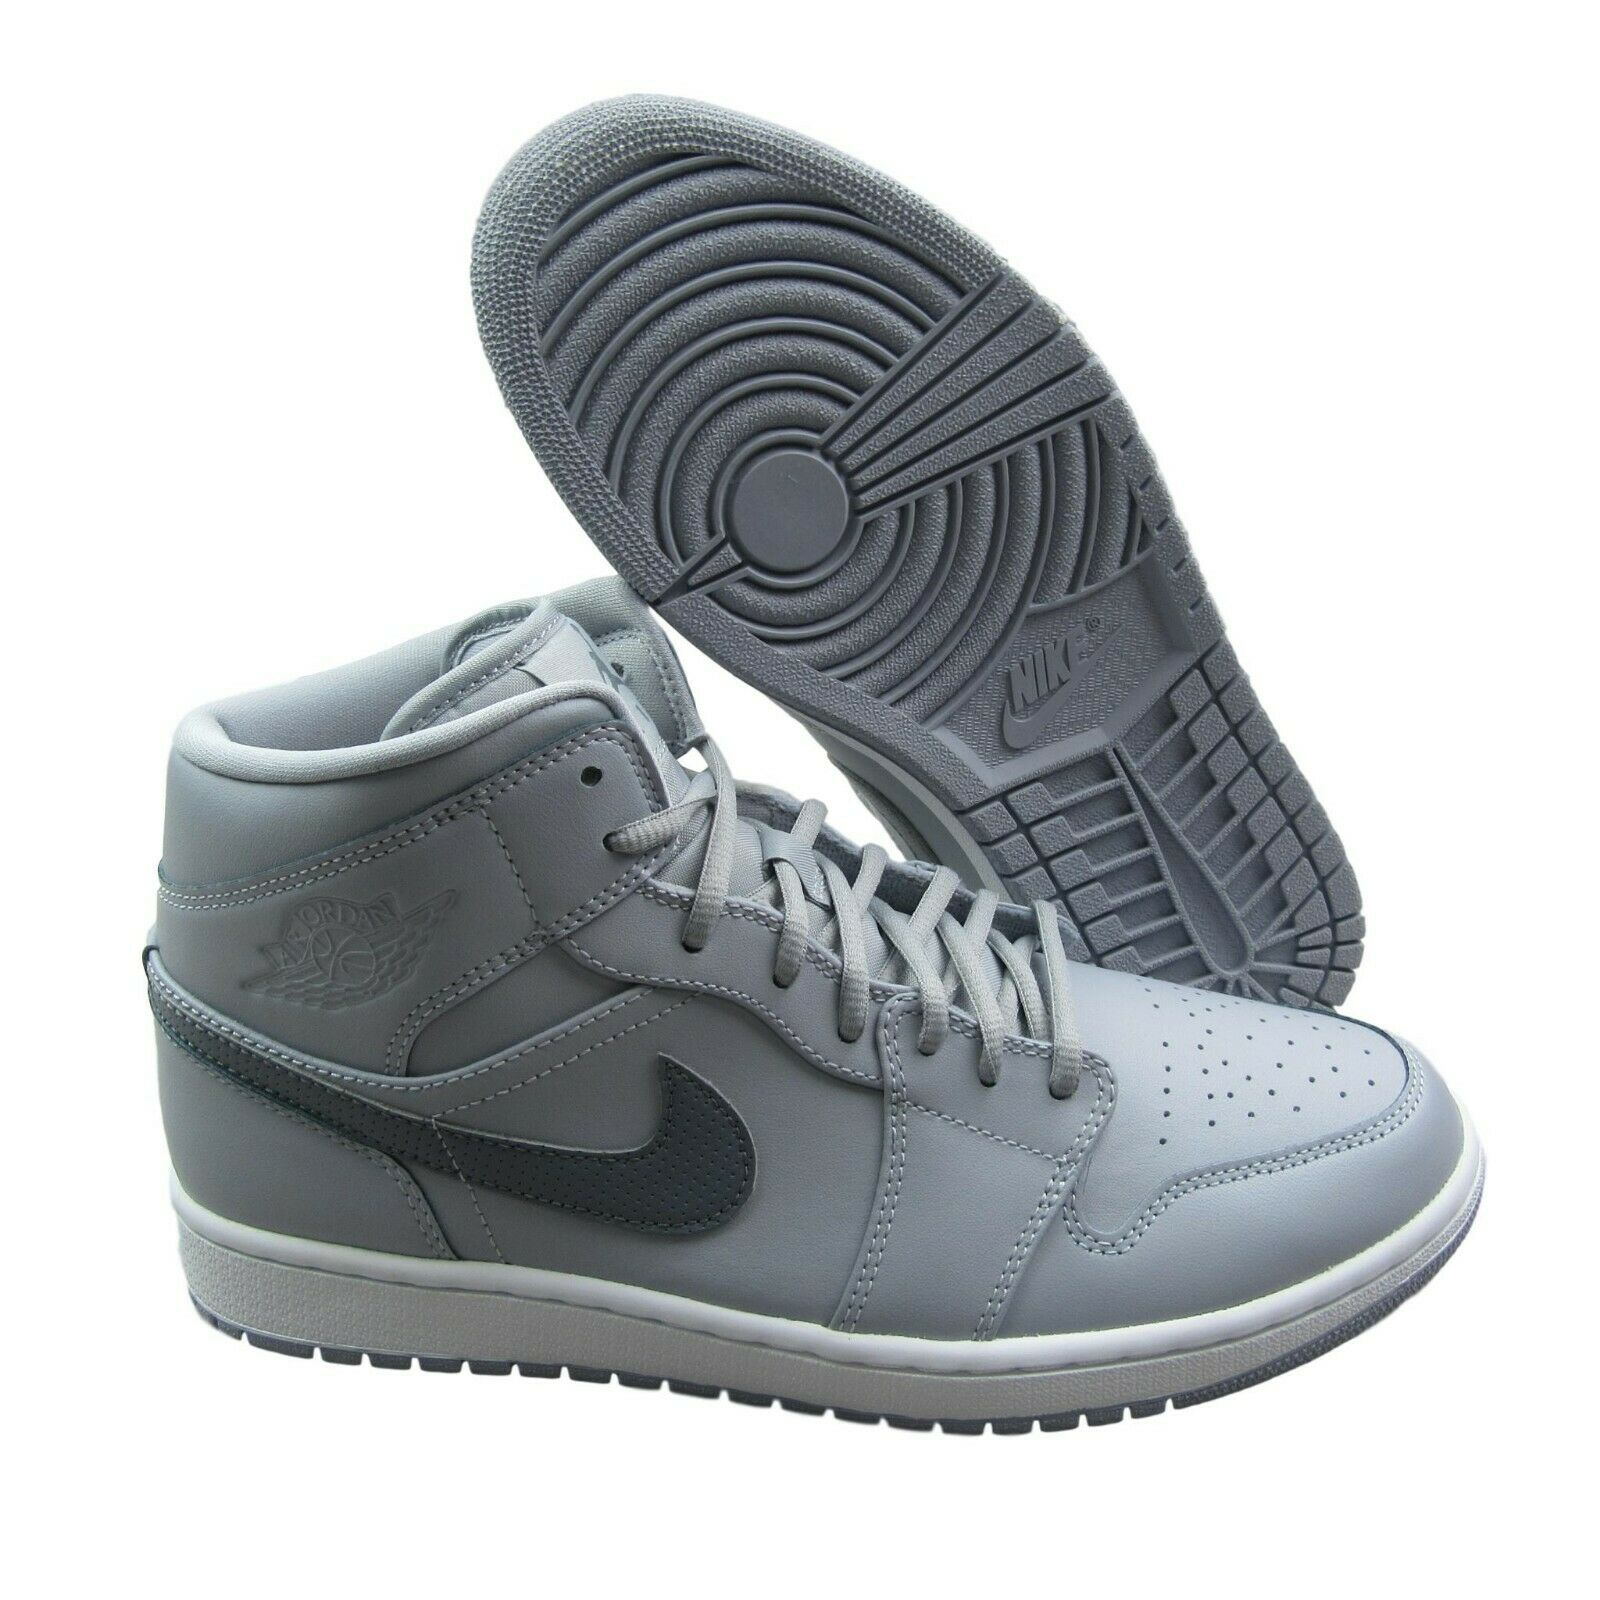 52ee45017a90b4 ... Grey Basketball Shoes 554724 033 New. 🔍. air-jordan-1-mid-mens-size-11- wolf-